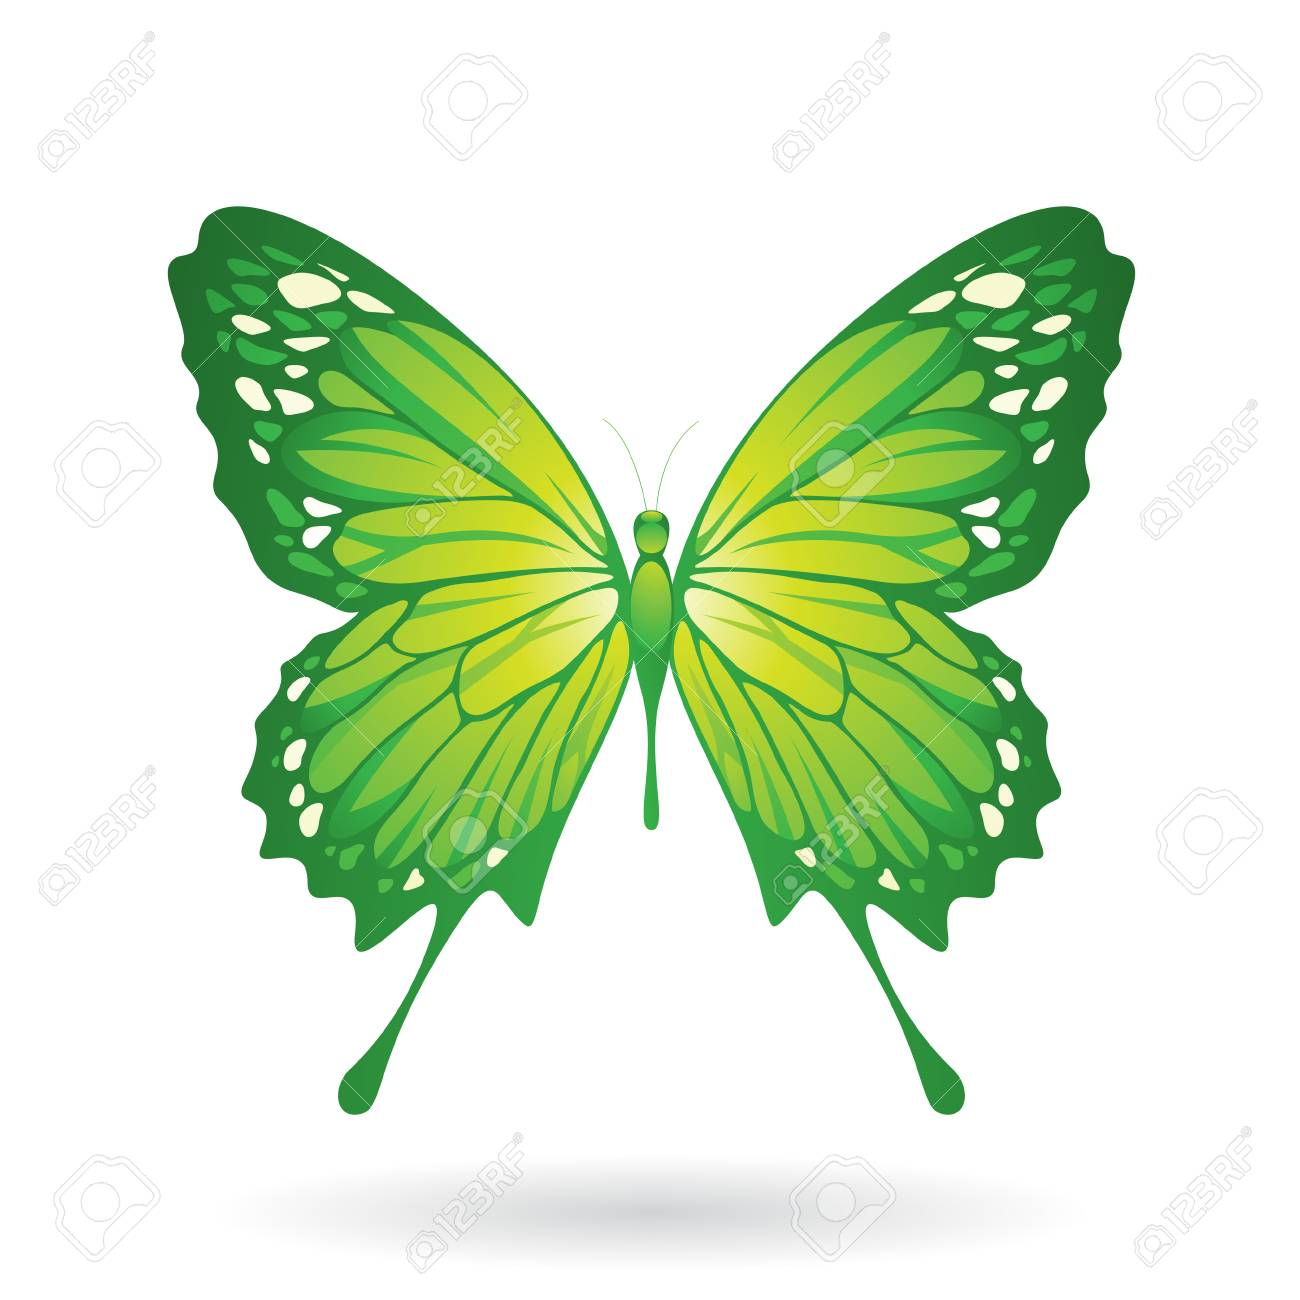 Vector Illustration Of A Colorful Butterfly Isolated On A White ...